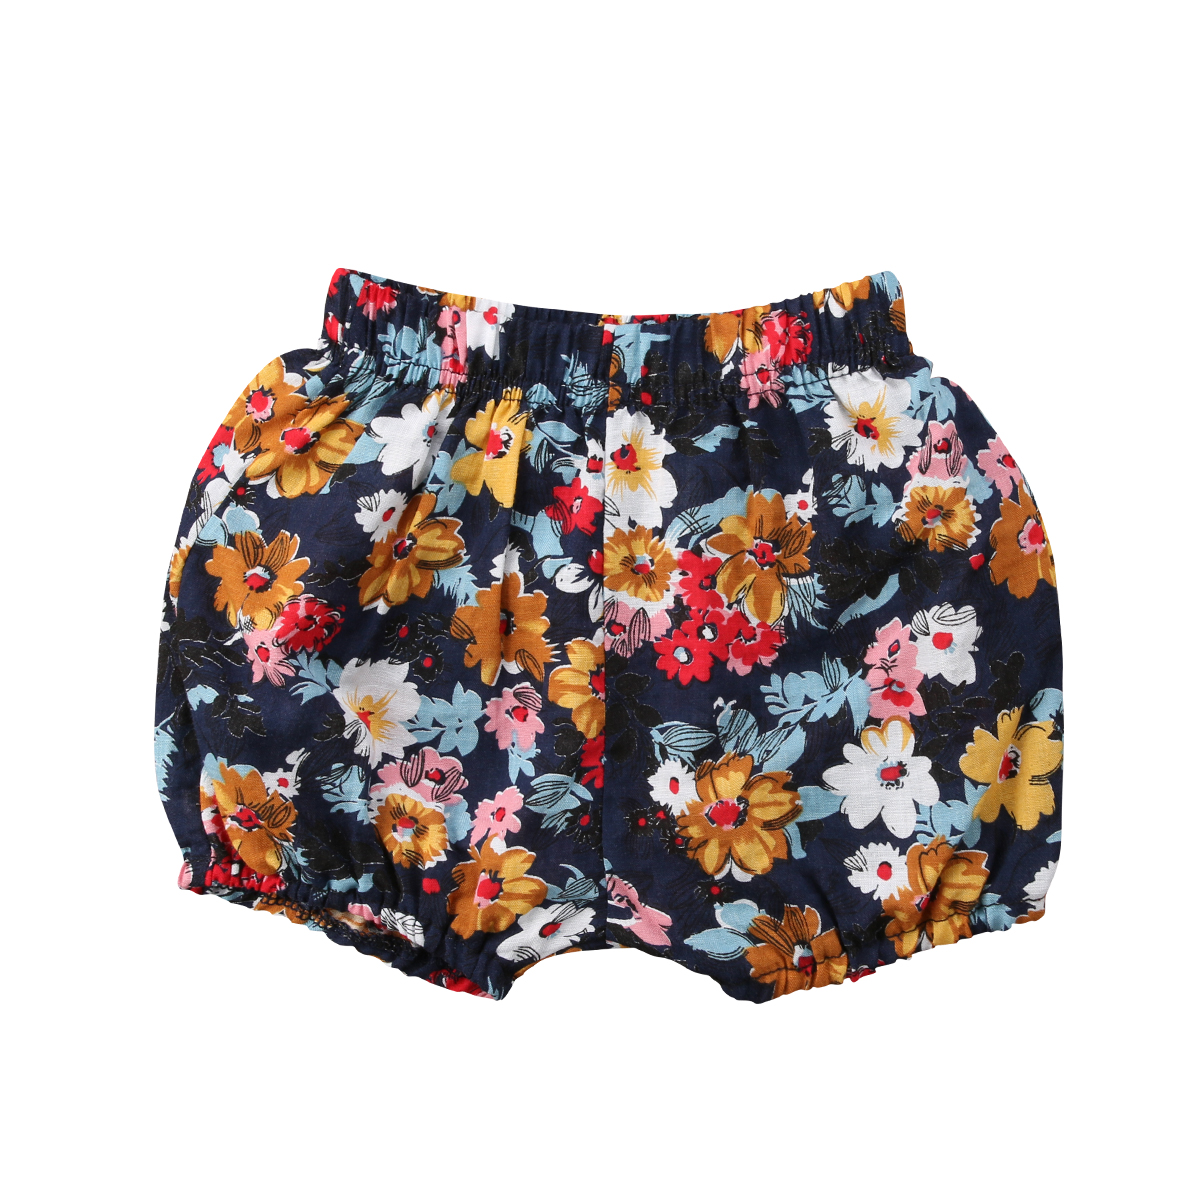 Baby Girl Lovely Floral Printed Short Pants Kid's Spring Summer Arrival Shorts Arrival Casual Cotton High Waist Shorts